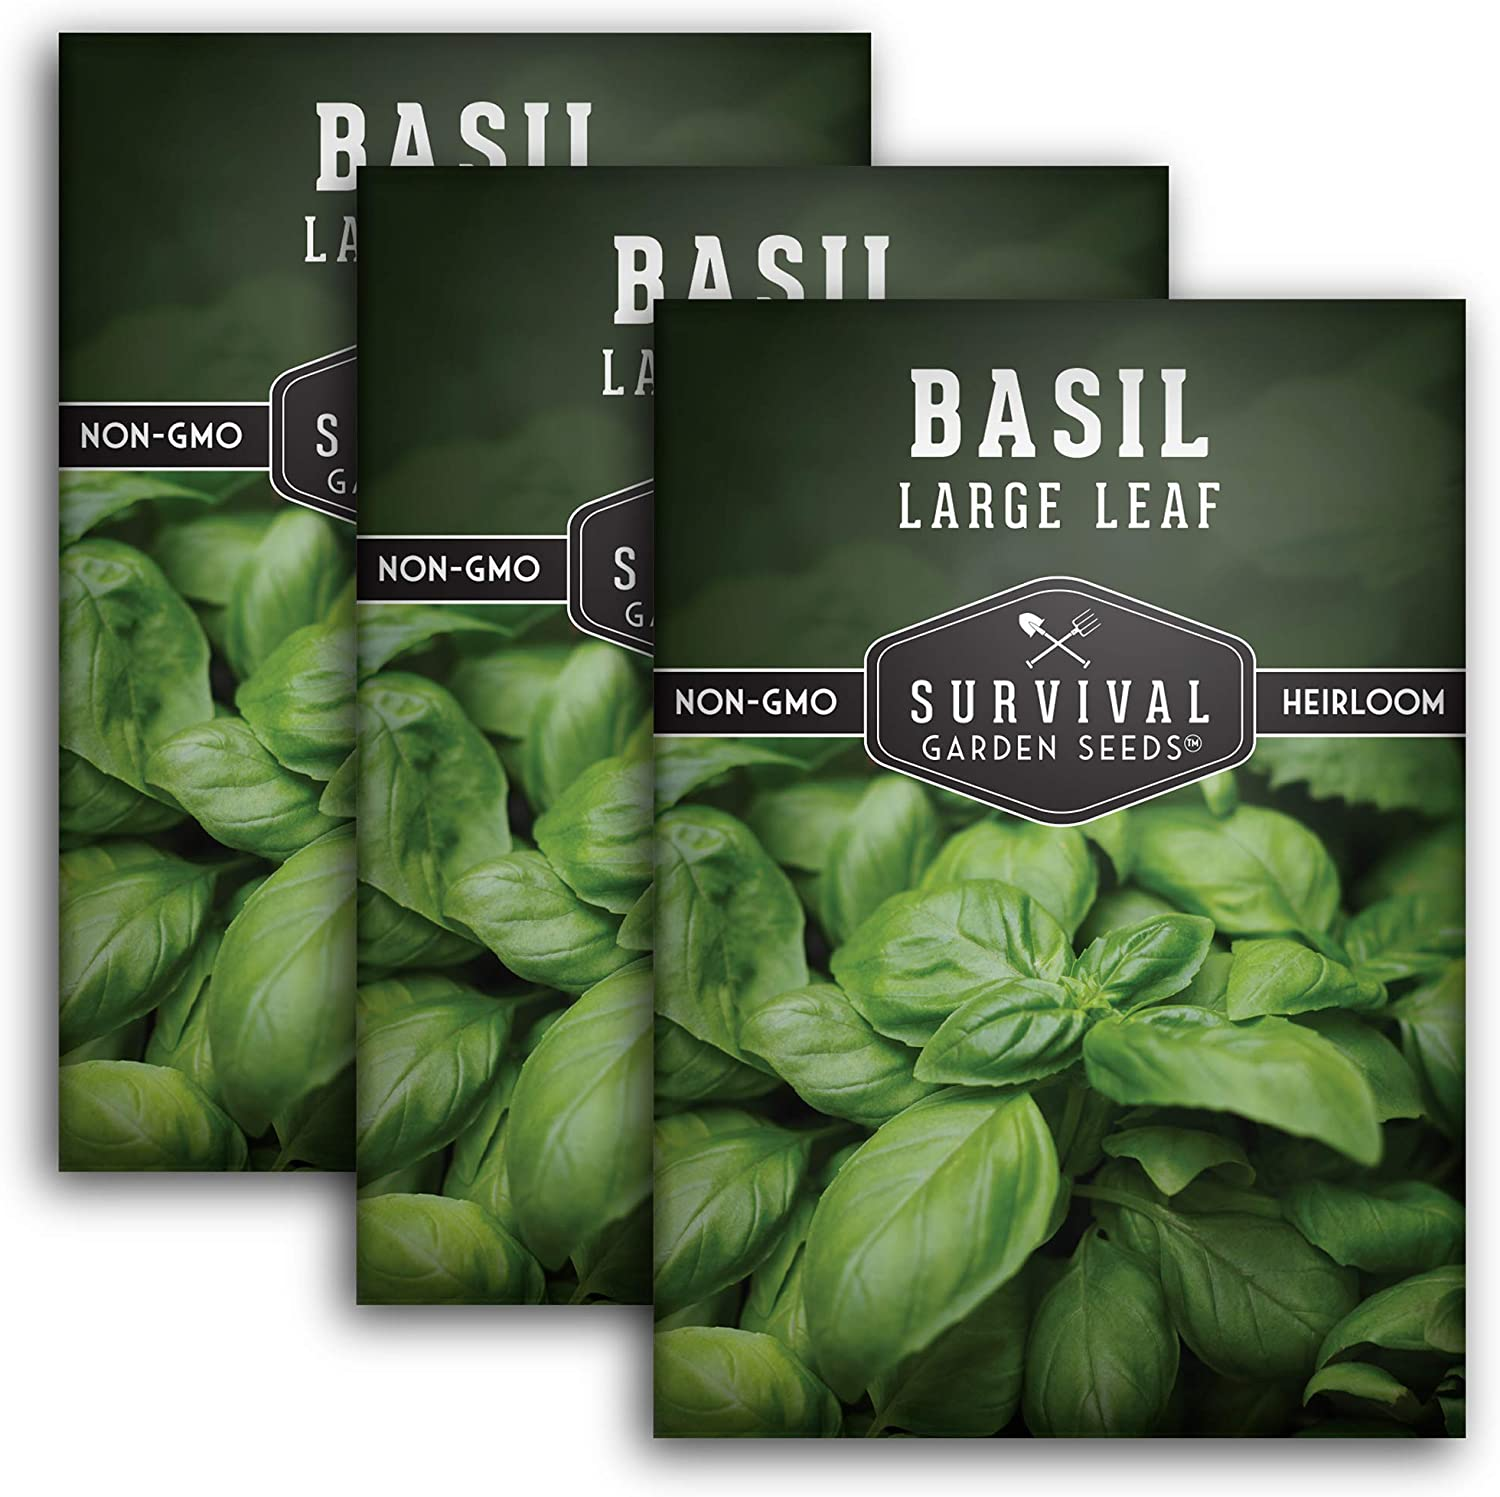 Survival Garden Seeds - Large Leaf Basil Seed for Planting - 3 Packets with Instructions to Plant and Grow in Your Home Vegetable Garden - Non-GMO Heirloom Variety